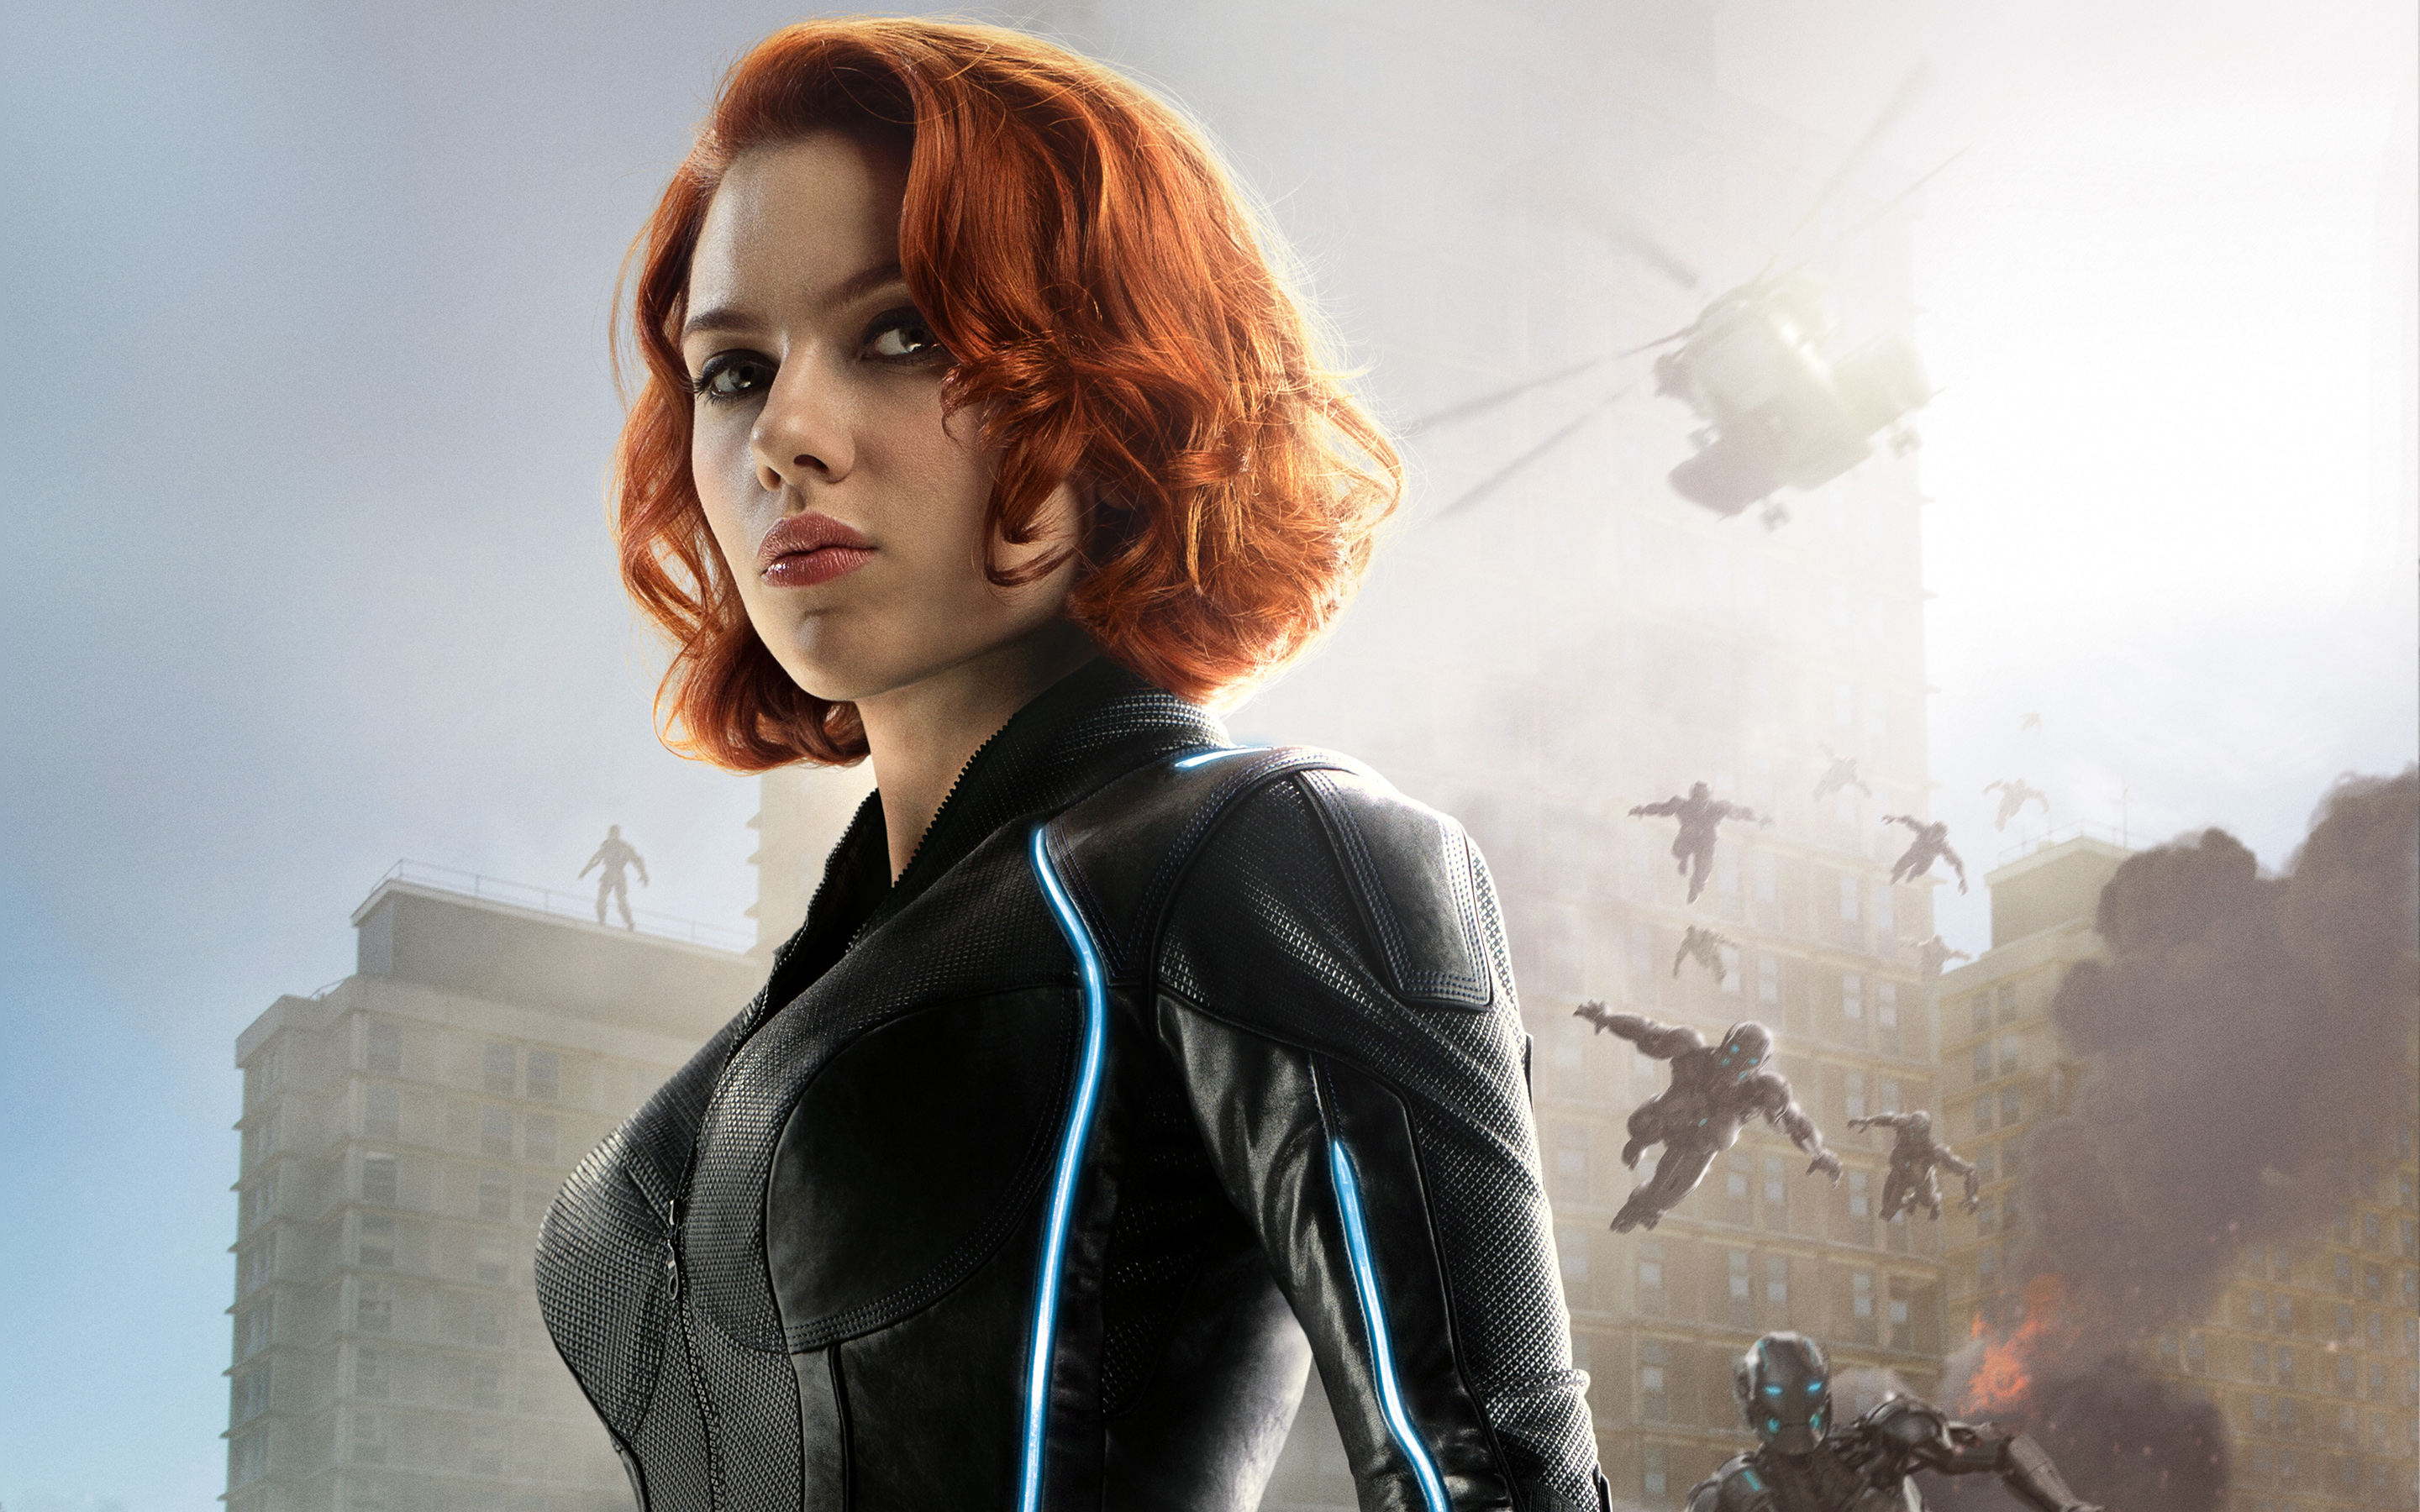 Black Widow Avengers Age of Ultron Wallpapers HD Wallpapers 2880x1800